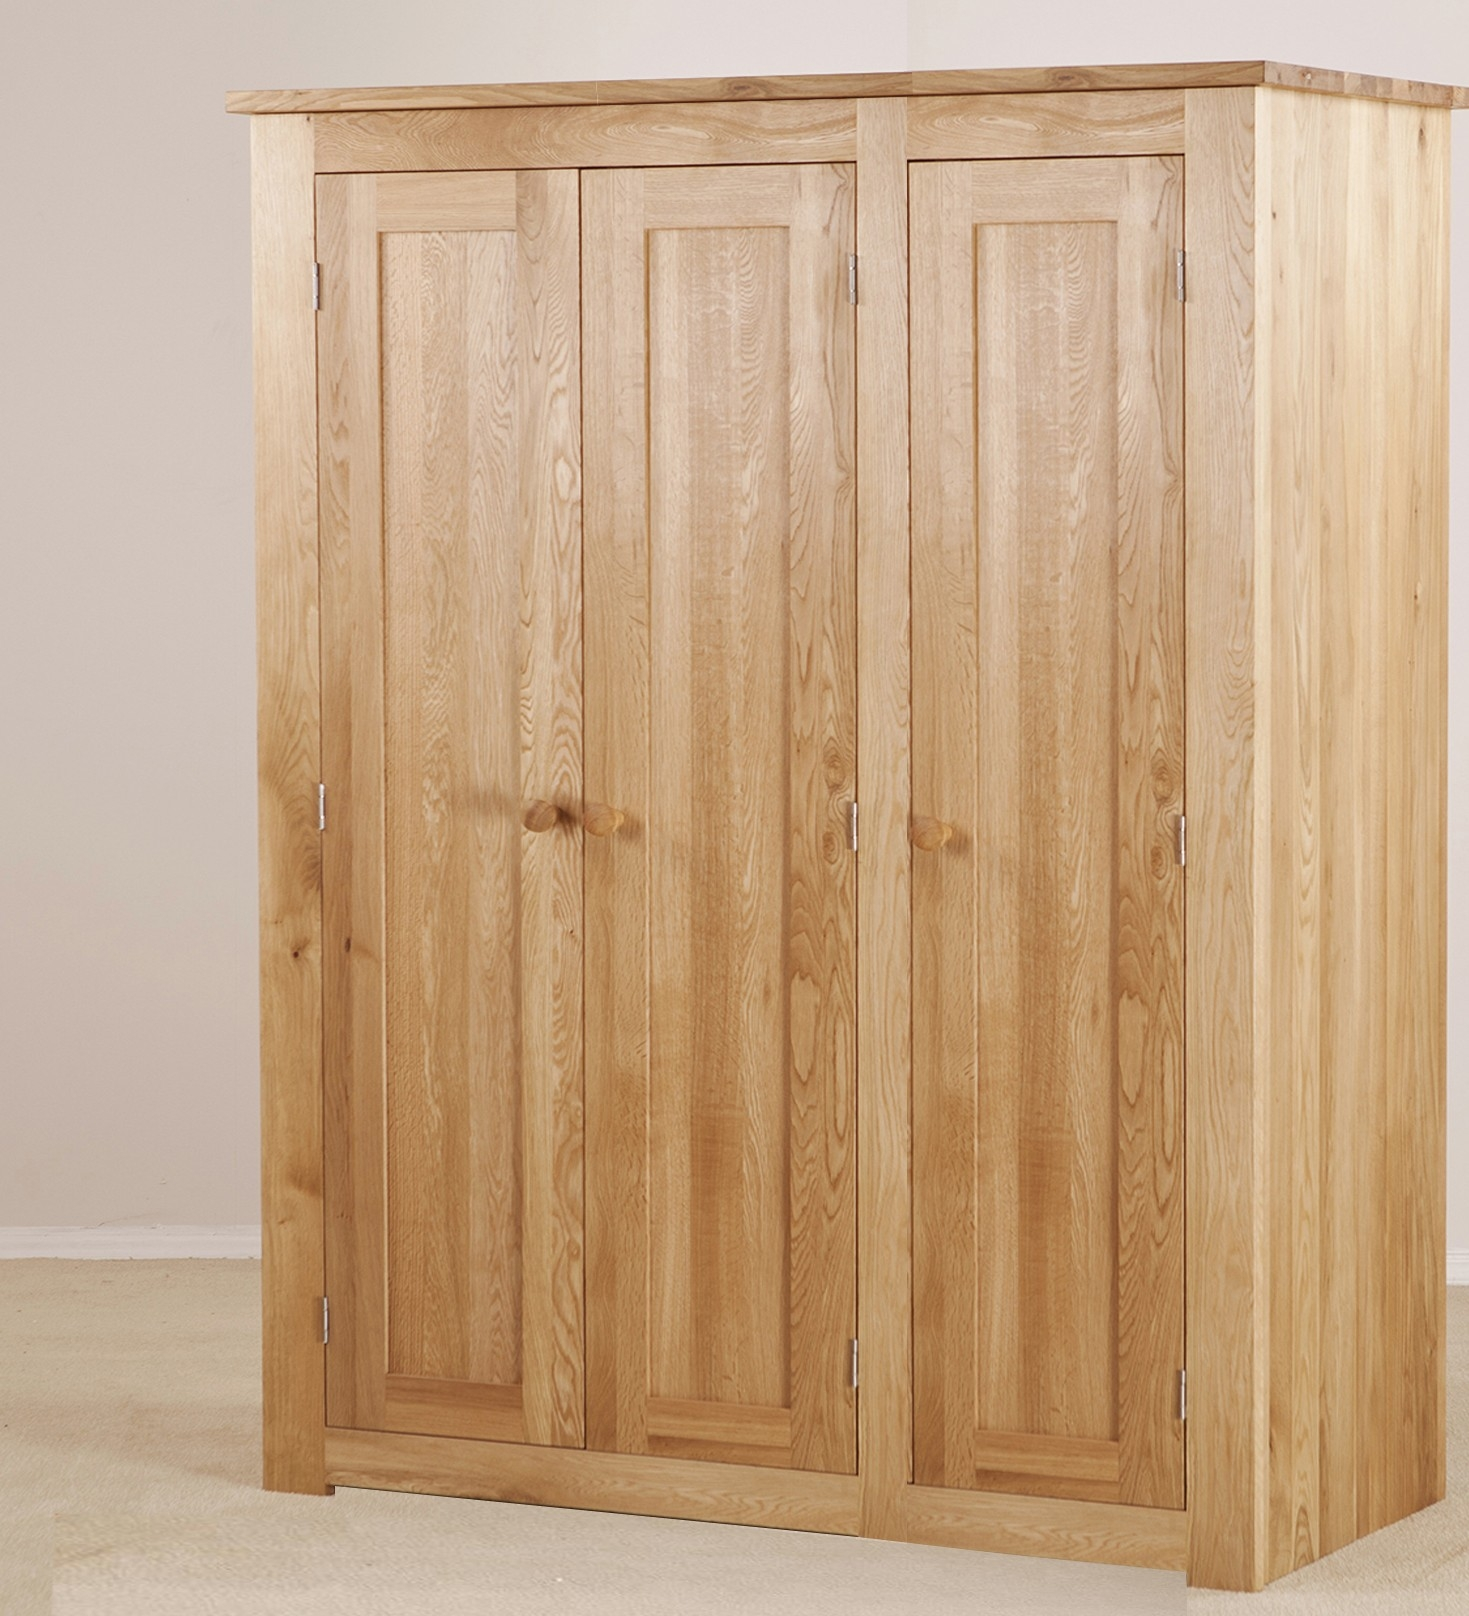 Torino Solid Oak Large 3 Door Wardrobe Furniture4yourhome Inside Solid Wood Fitted Wardrobes (Image 13 of 15)